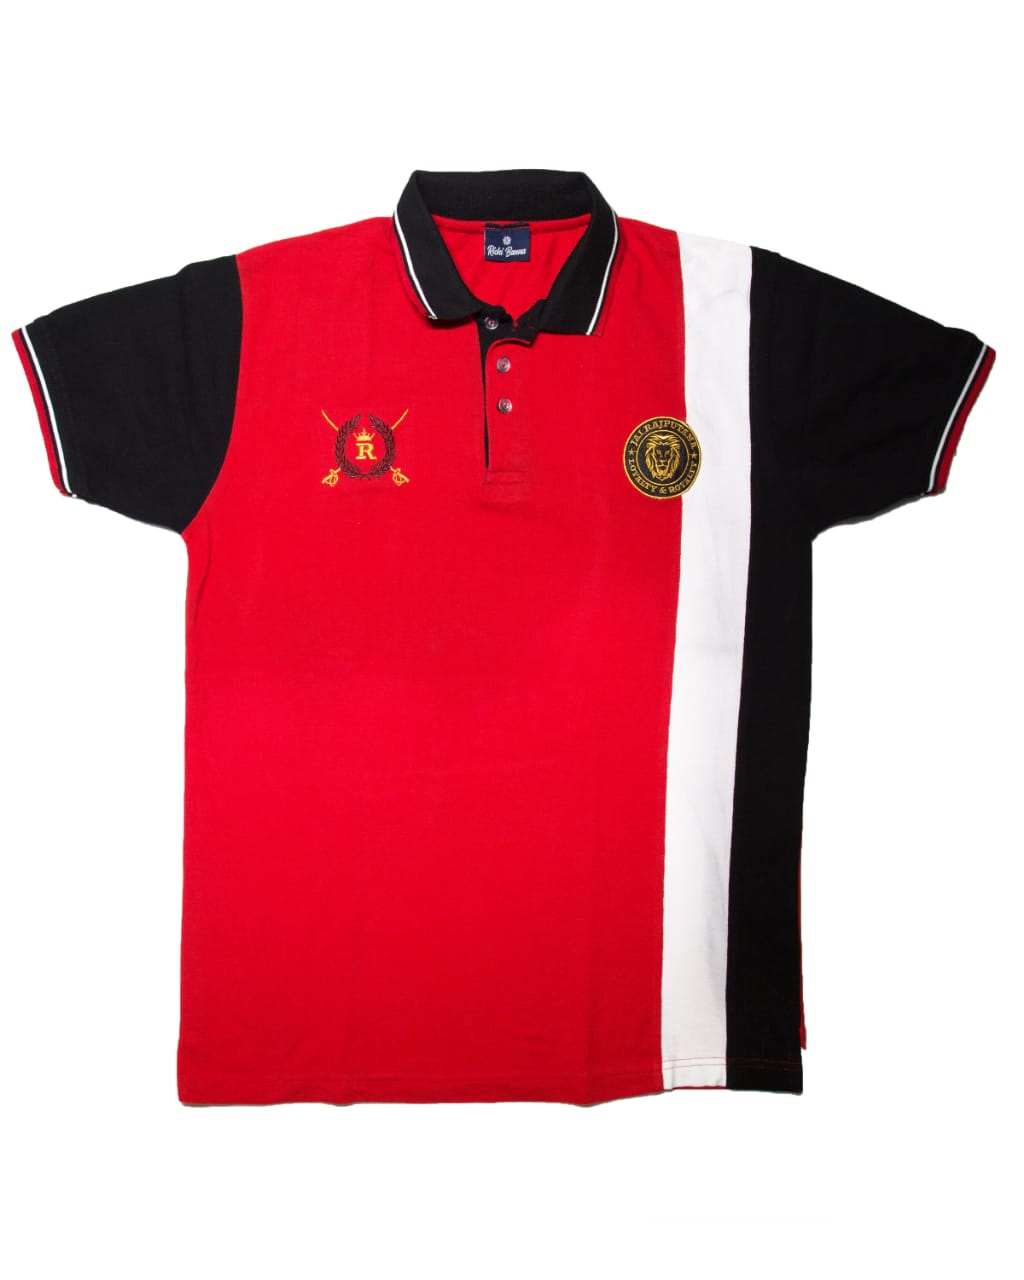 Red and Black Rajputana Polo T-Shirt with White Stripes